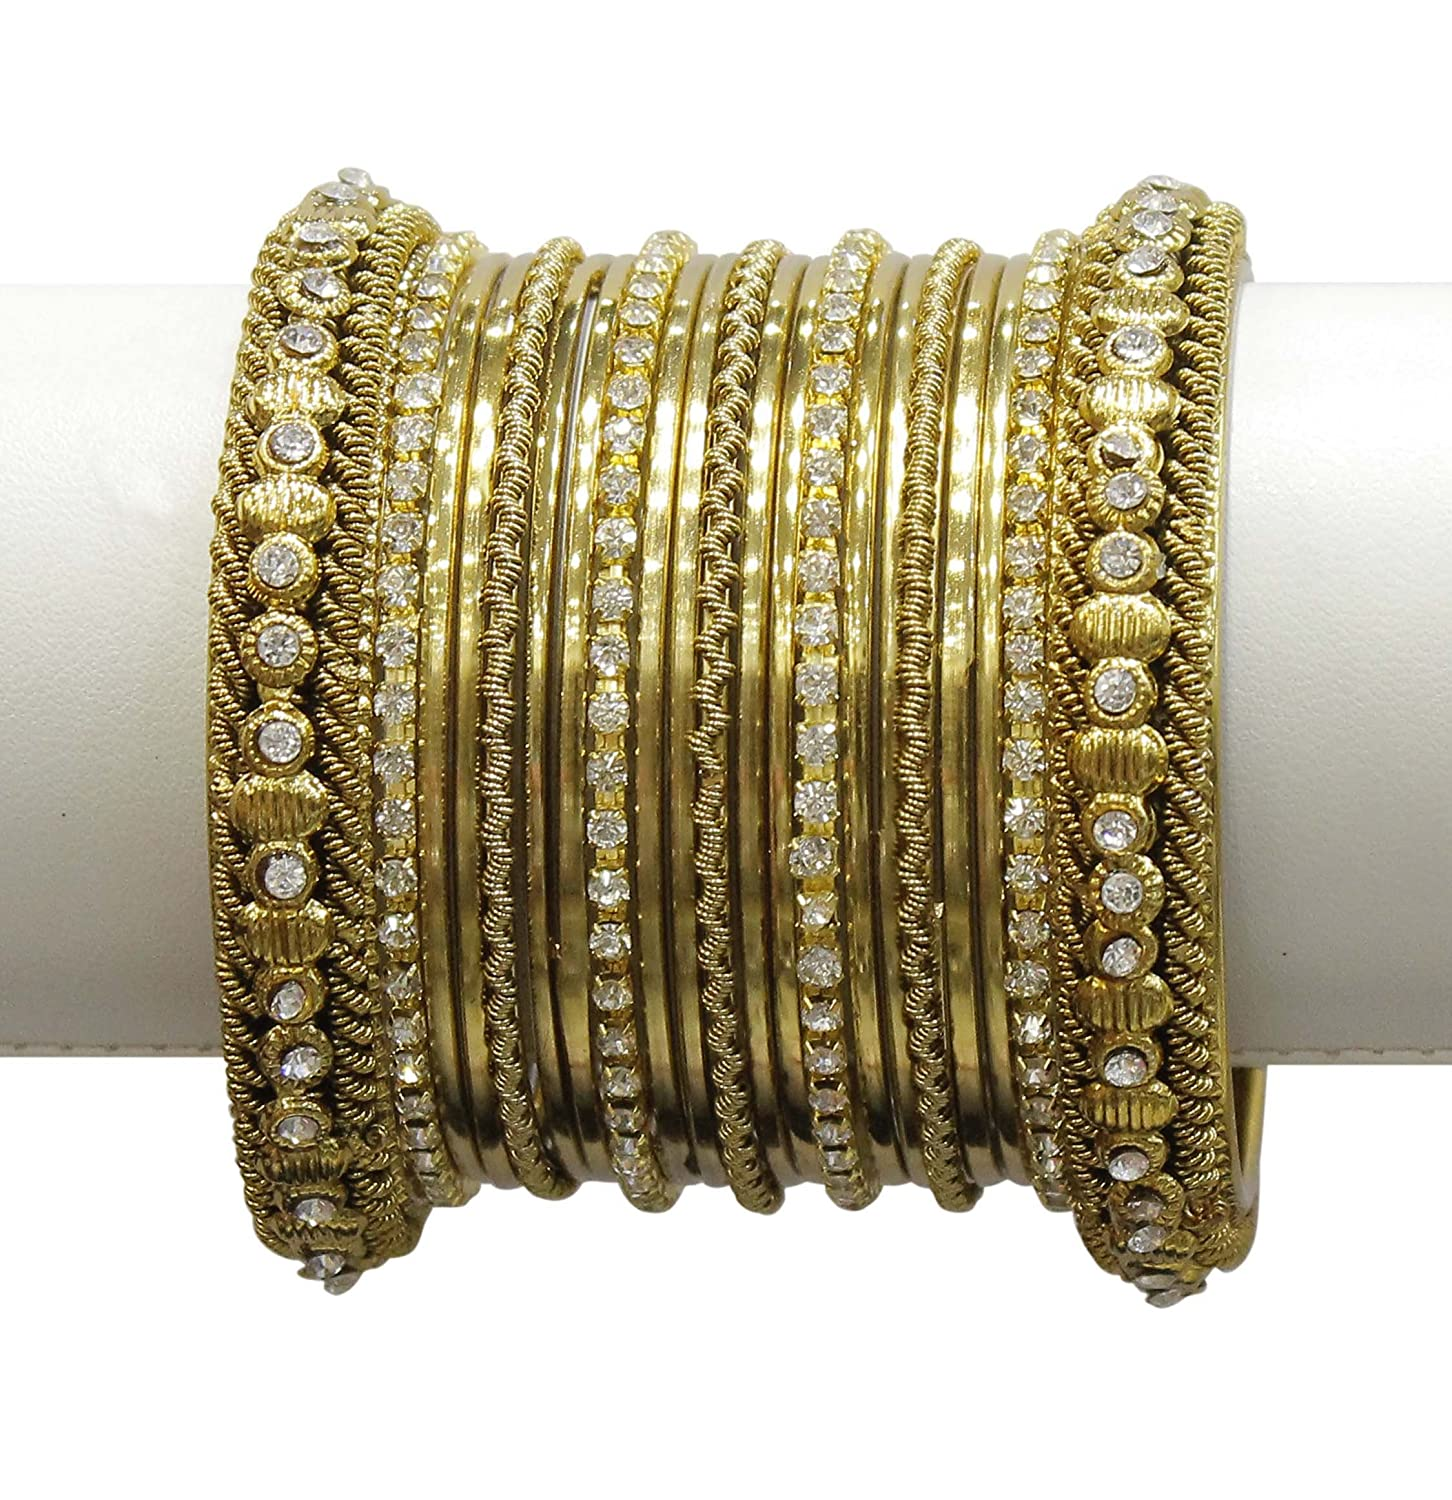 MuchMore Beautiful Traditional Indian Bollywood Style Antique Gold Plated Polki Bangle Jewelry MB-80